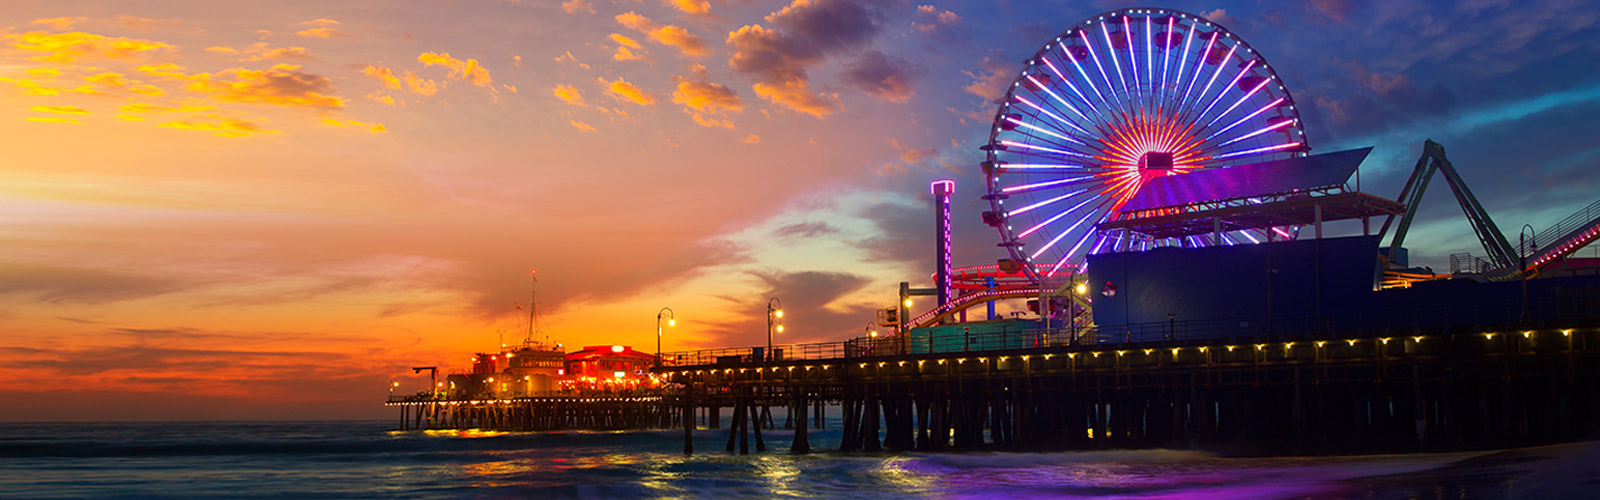 View of Santa Monica Pier at Night With Bright Colored Lights